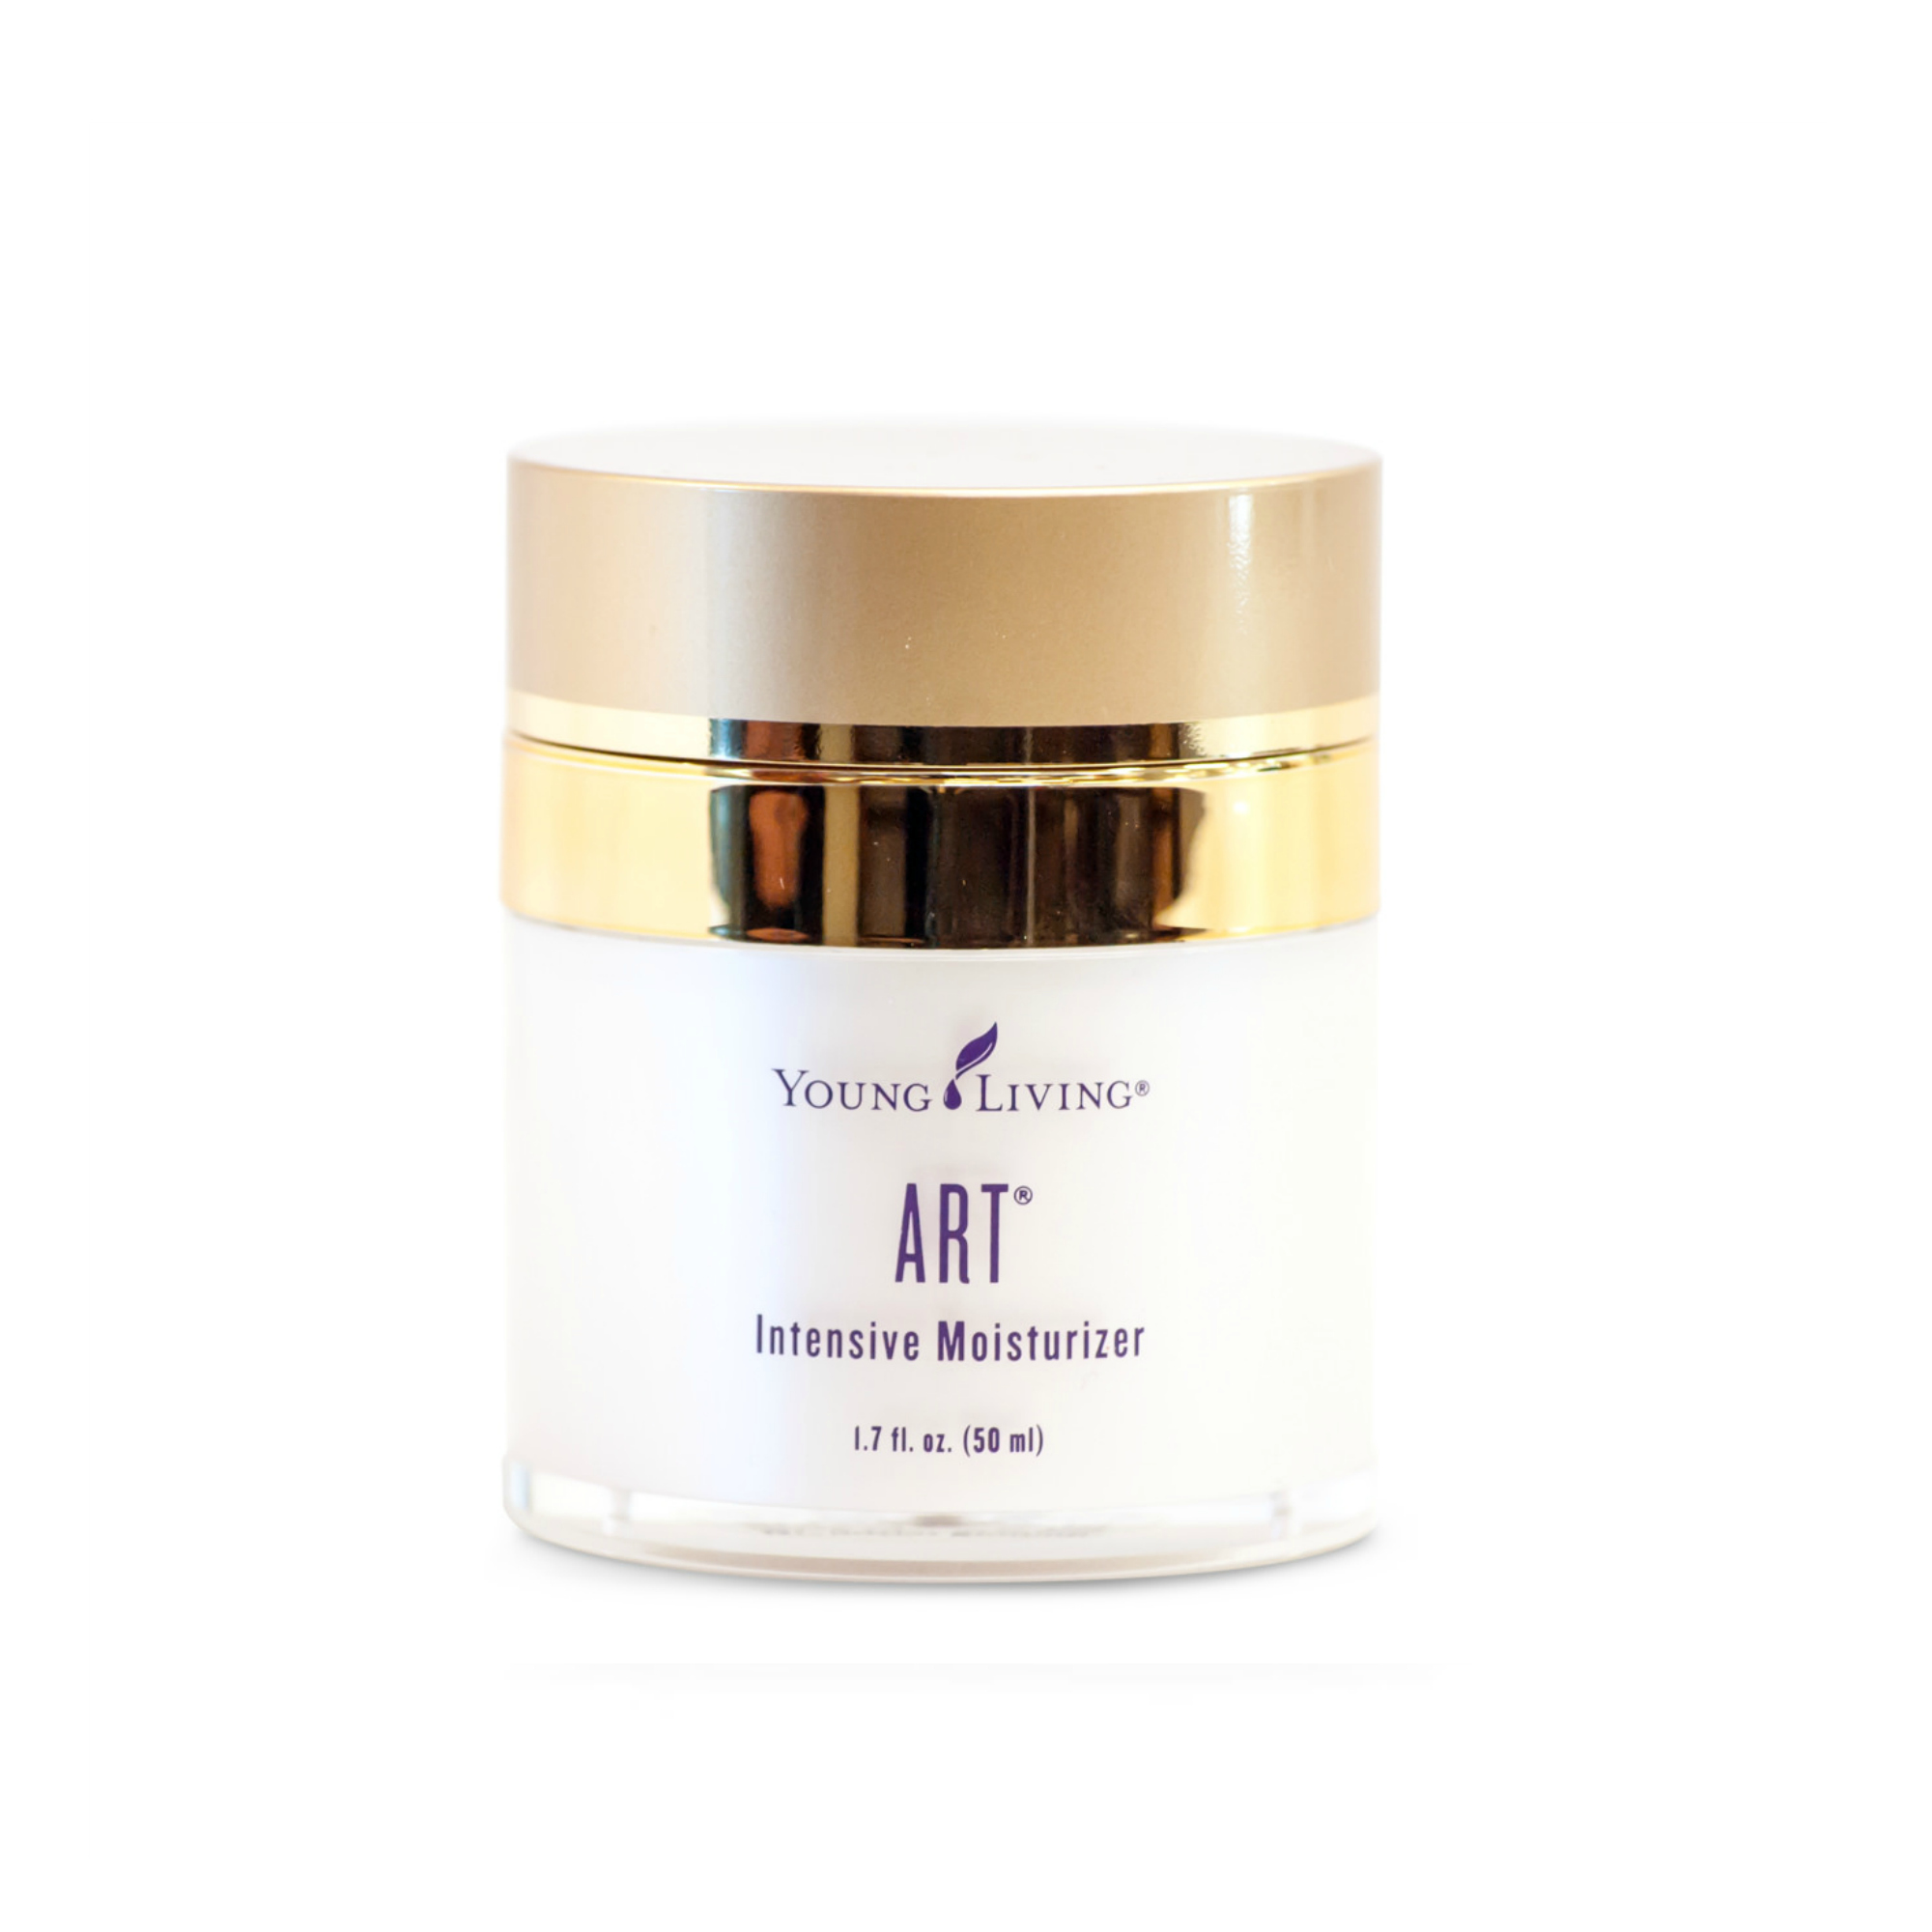 ART INTENSIVE MOISTURIZER    This deep, ultra-hydrating lotion recaptures the qualities of younger-looking skin by reducing the appearance of fine lines and wrinkles and helping skin feel smoother and more pliable. It nourishes the skin with ingredients such as pracaxi seed oil and blue bird hibiscus leaf extract to even skin tone and promote hydration. It also has five premium essential oils to create a light floral scent and luxurious experience that leaves your skin feeling soft, refreshed, and radiant.   Click here   to learn more about this product.